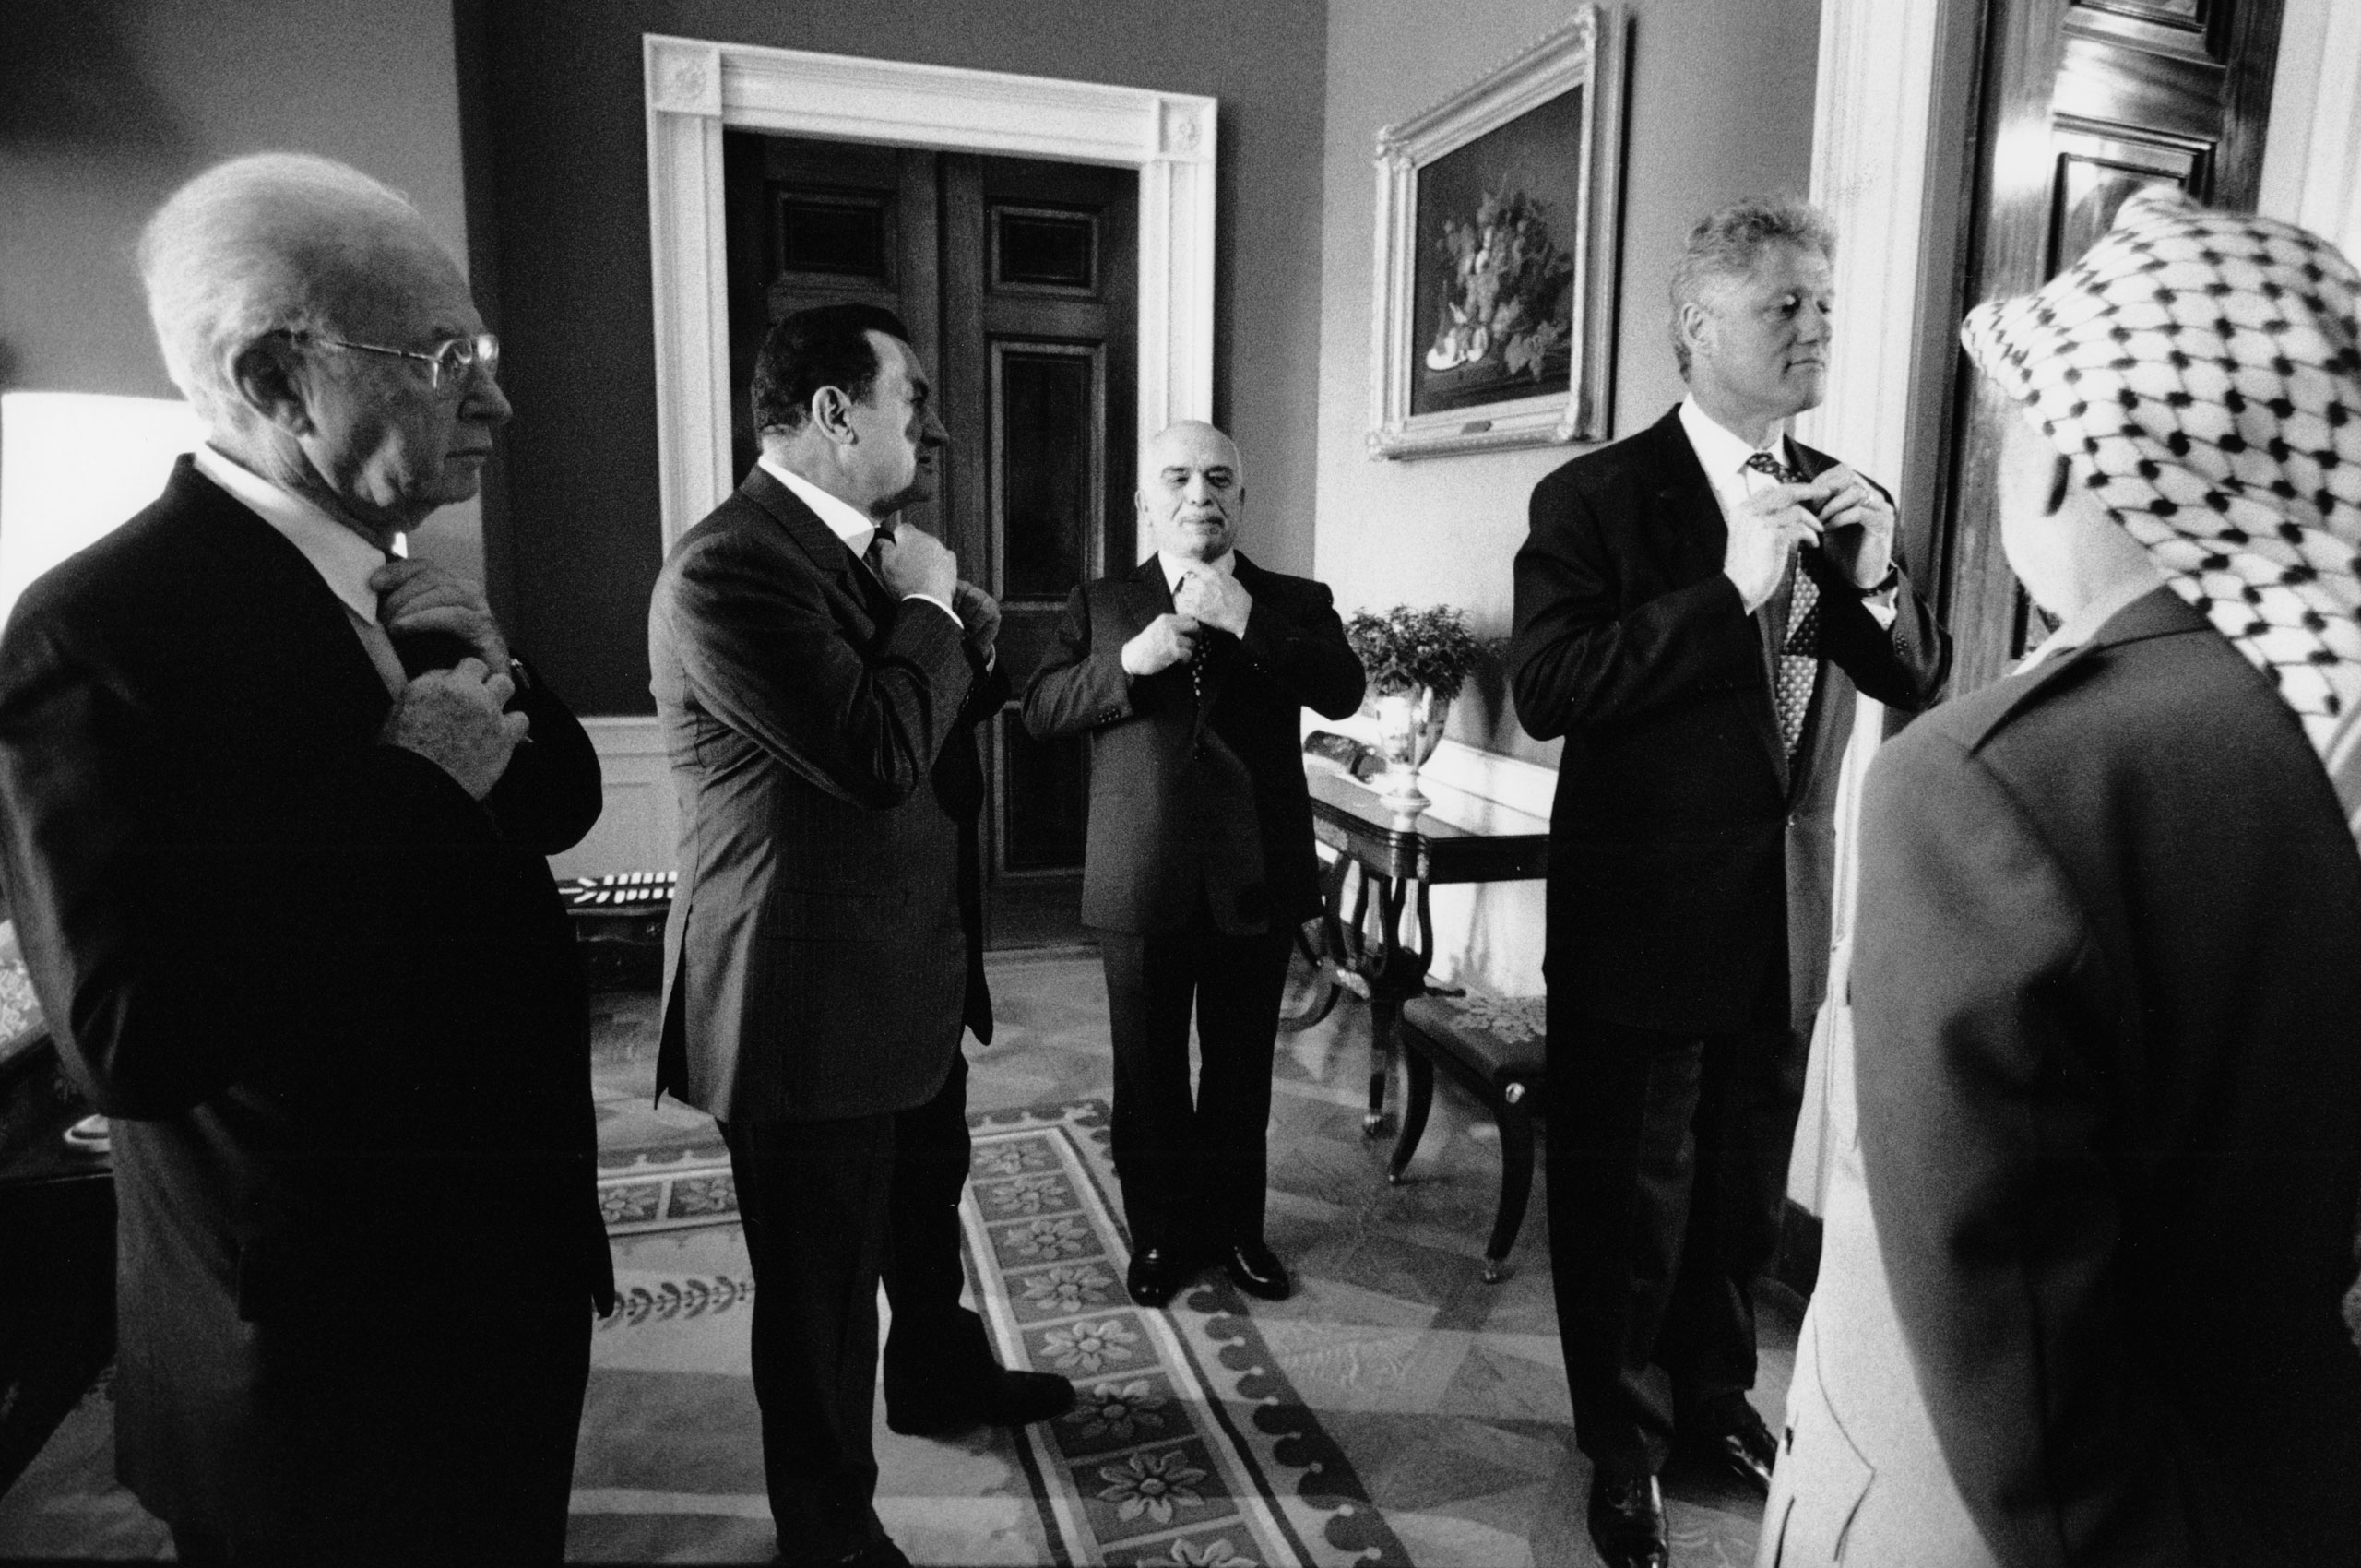 Palestine Liberation Organization leader Yasser Arafat, Israeli Prime Minister Yitzhak Rabin, Egyptian President Hosni Mubarak and King of Jordan Hussein bin Talal take a cue from President Bill Clinton, all adjusting their ties before the ceremony to sign an accord expanding Palestinian self-rule in the West Bank, Sept. 28, 1995.